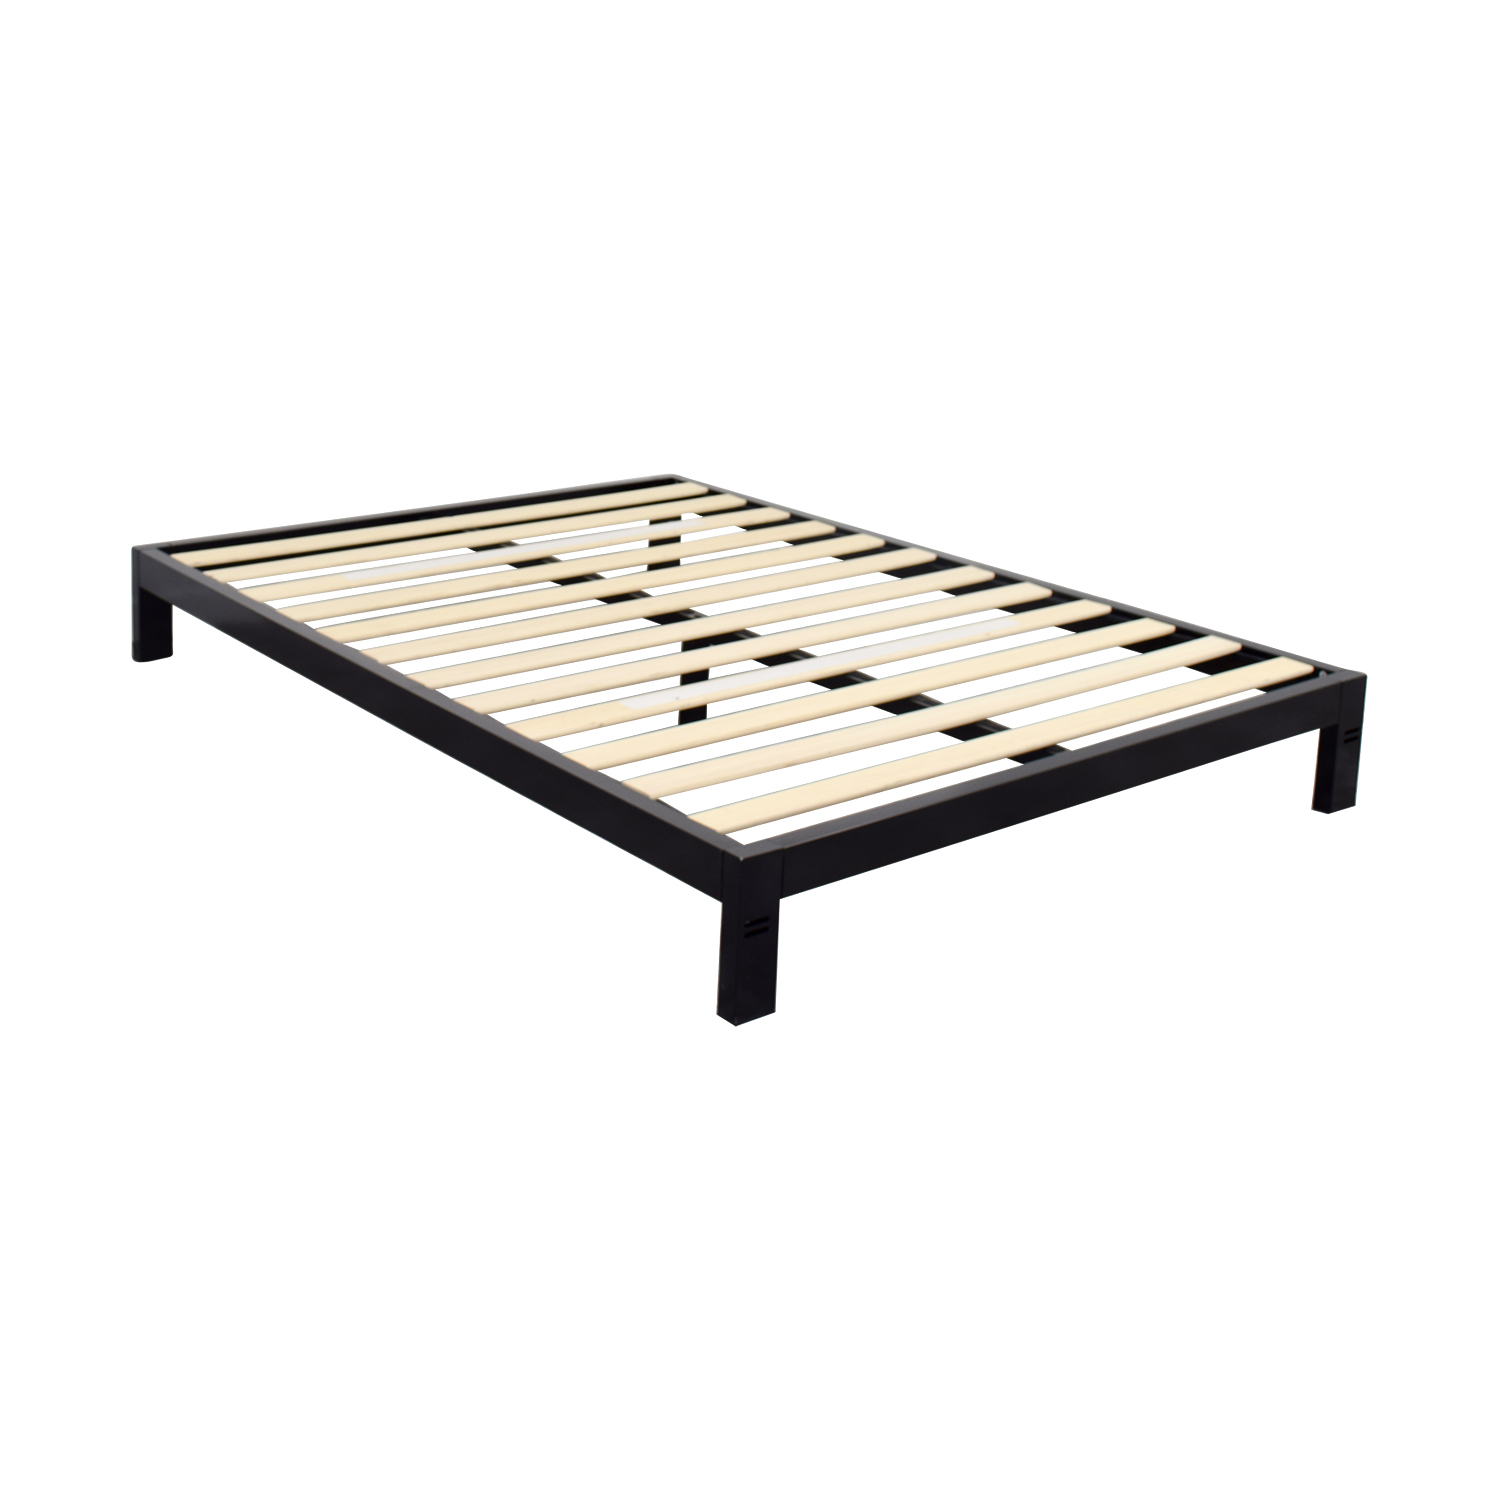 86 off black metal queen platform bed frame beds for Queen bed frame